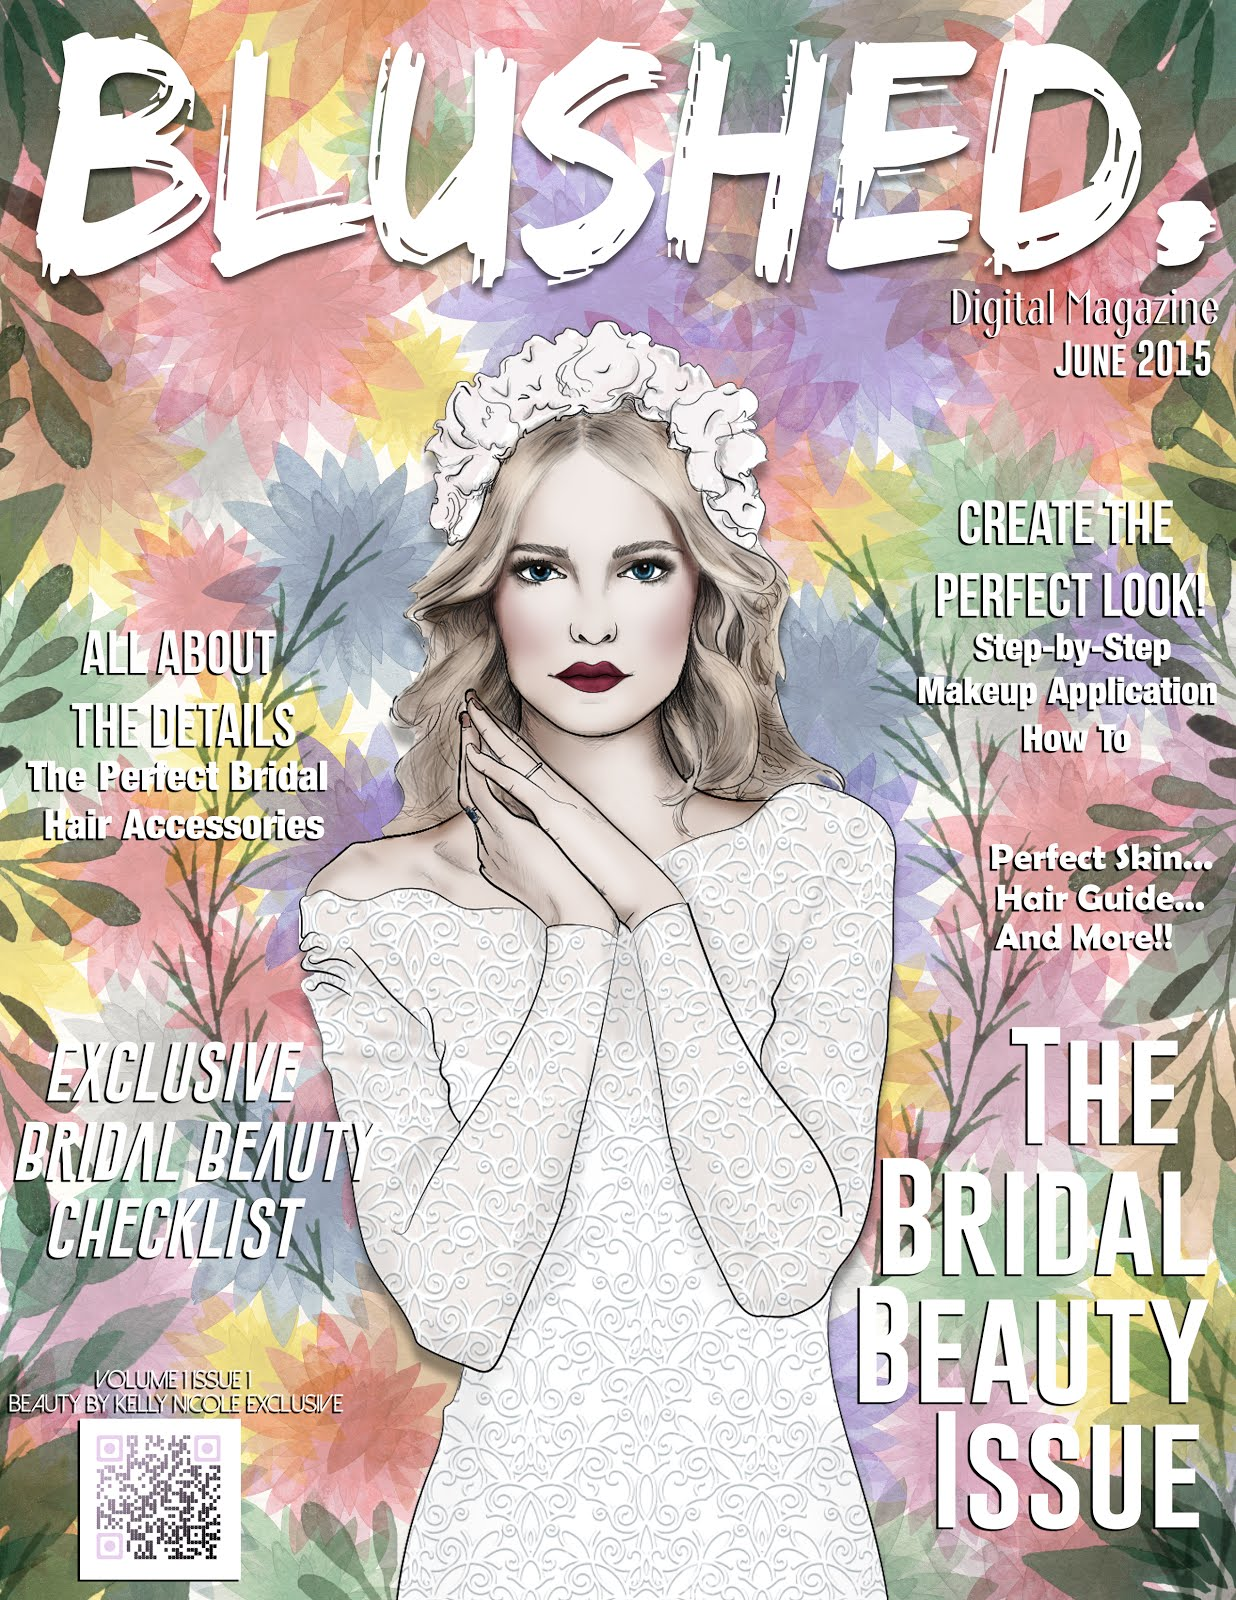 Become an Insider to receive the first issue of Blushed Digital Magazine Free!